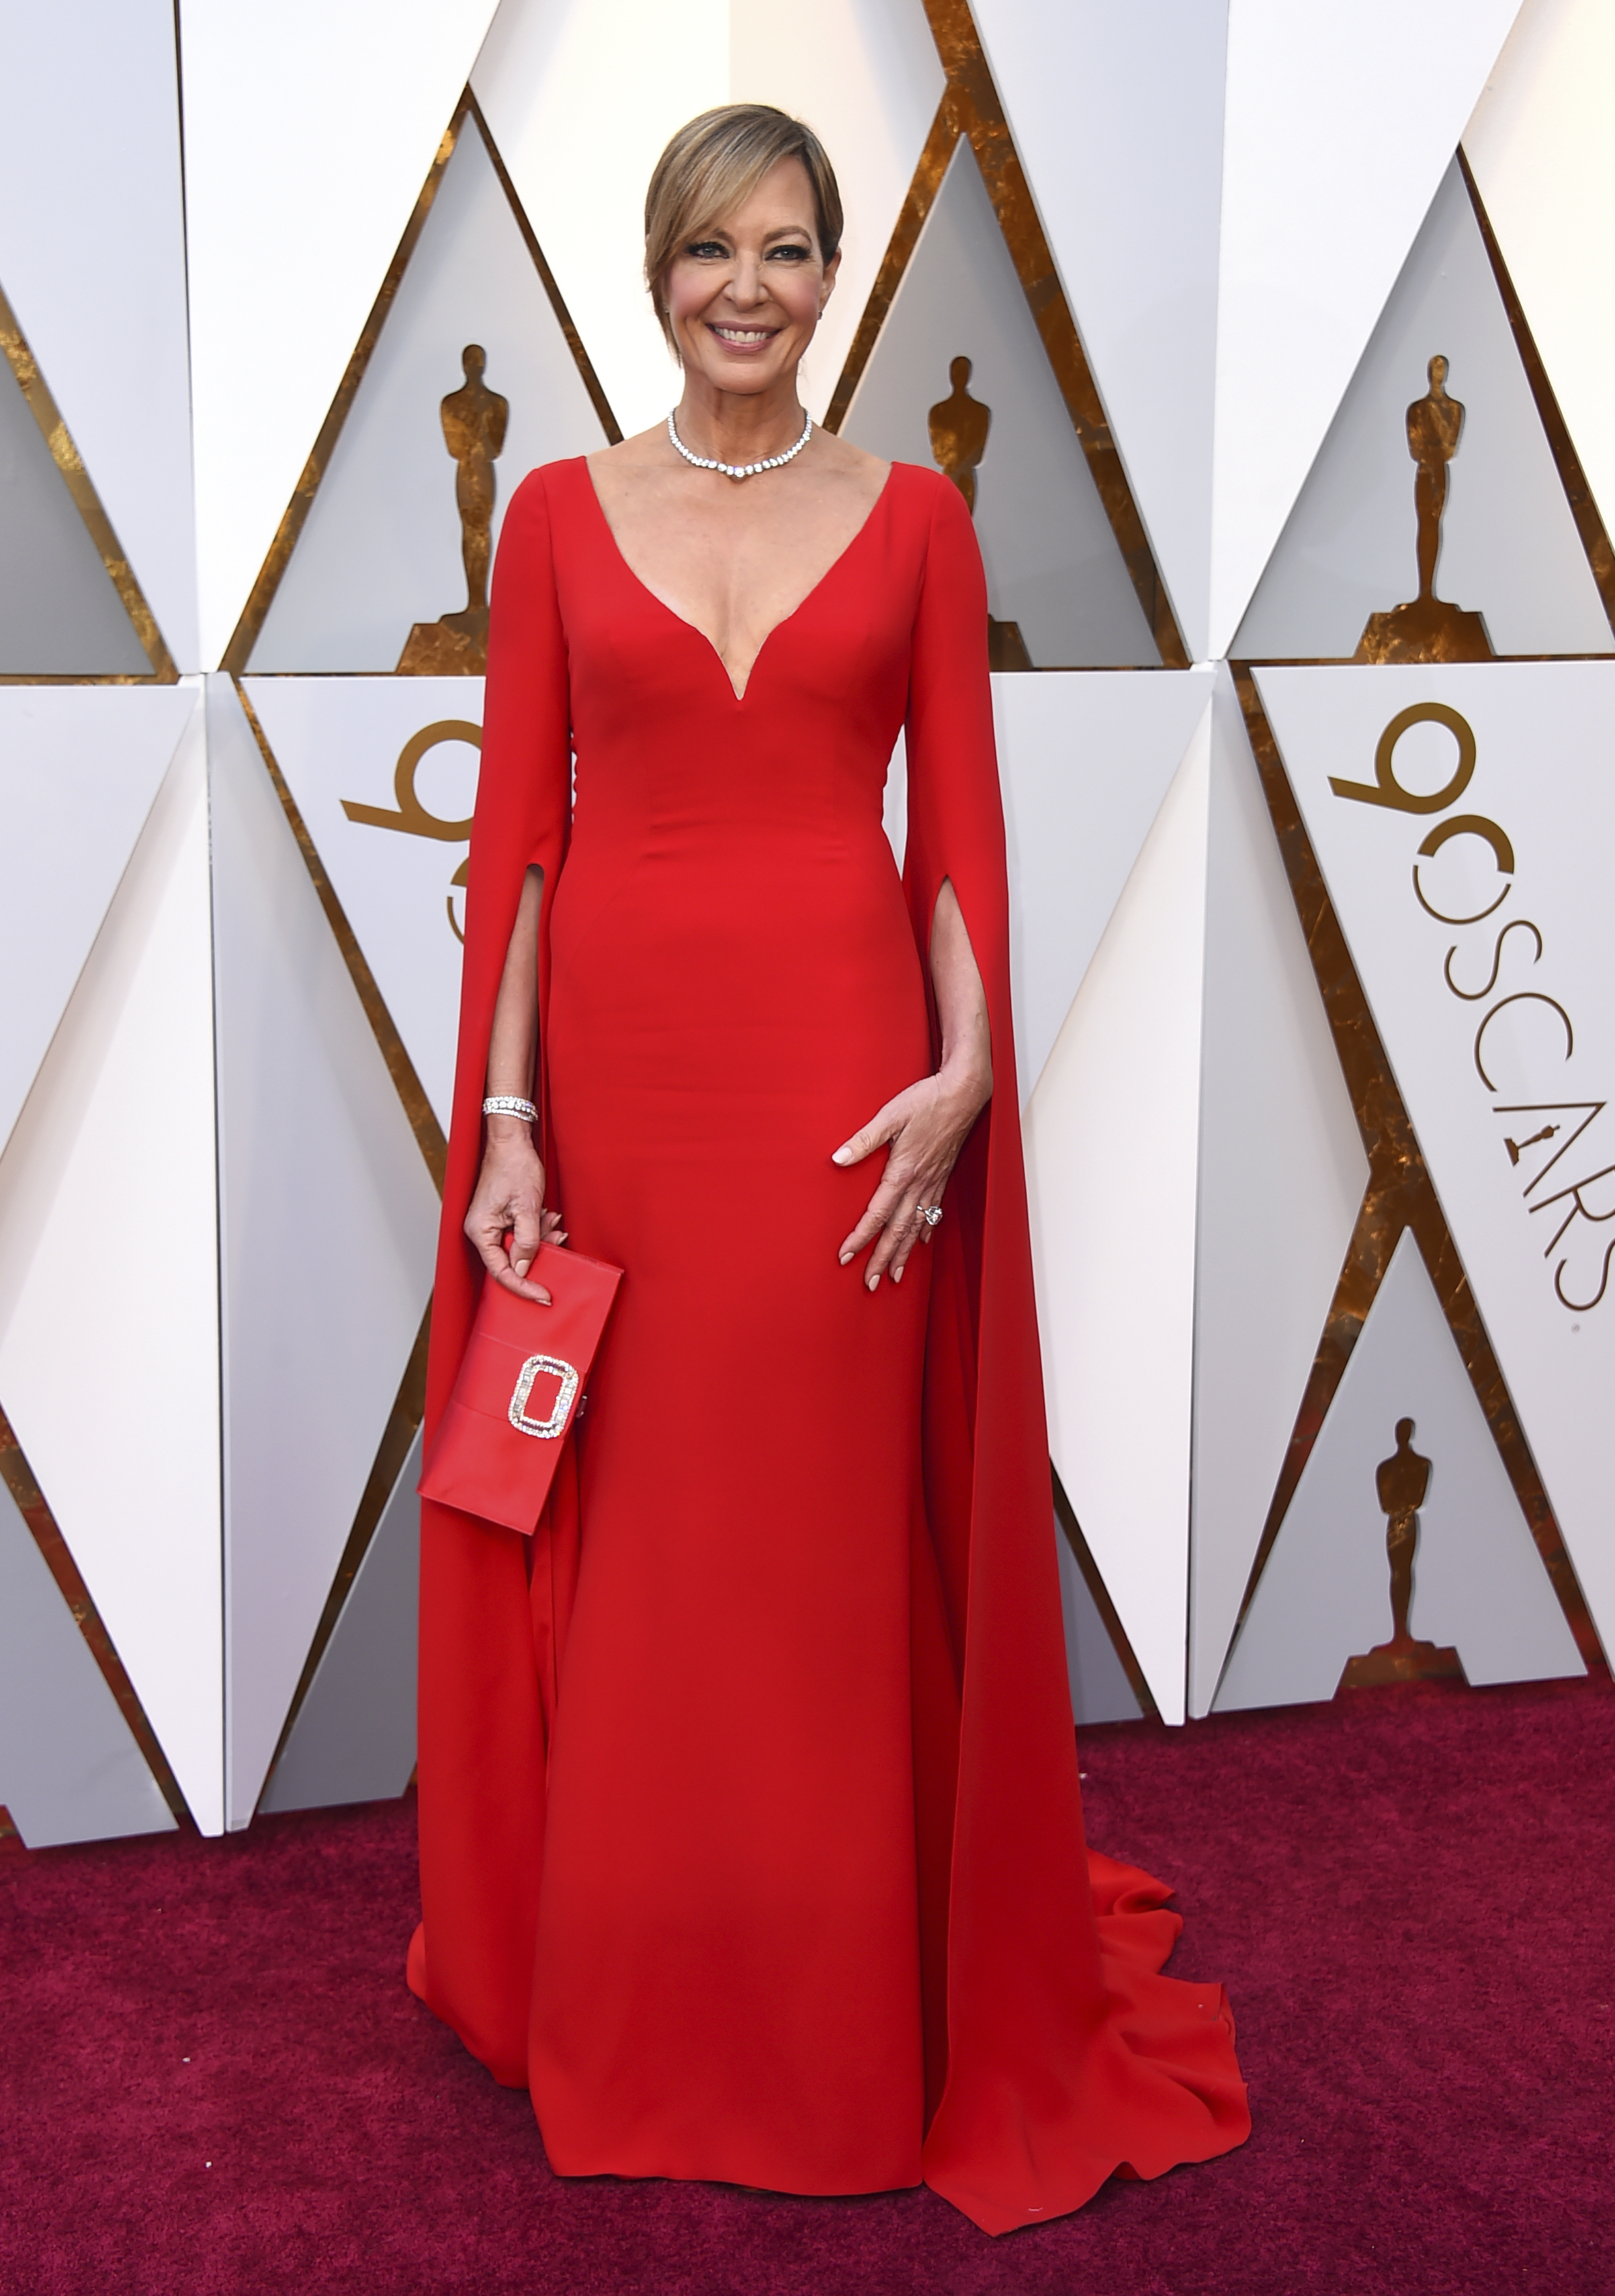 <div class='meta'><div class='origin-logo' data-origin='none'></div><span class='caption-text' data-credit='Jordan Strauss/Invision/AP'>Best Supporting Actress nominee Allison Janney of ''I, Tonya'' arrives at the Oscars on Sunday, March 4, 2018, at the Dolby Theatre in Los Angeles.</span></div>